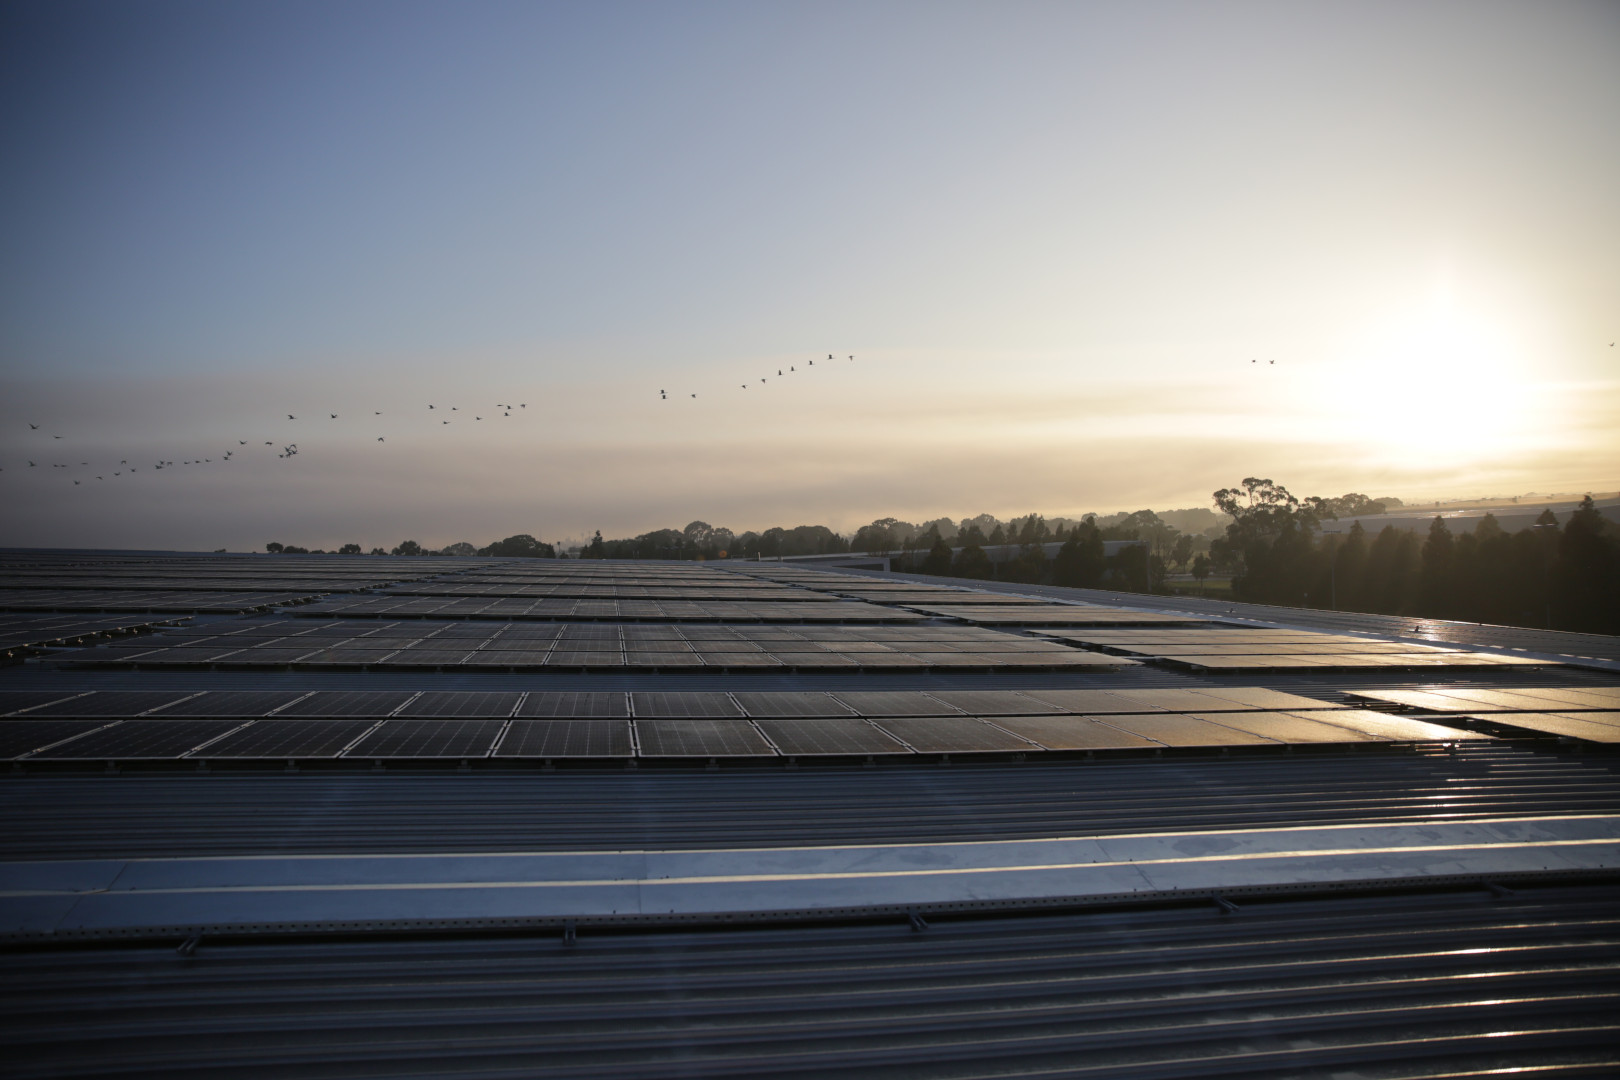 How much does a solar panel actually produce?